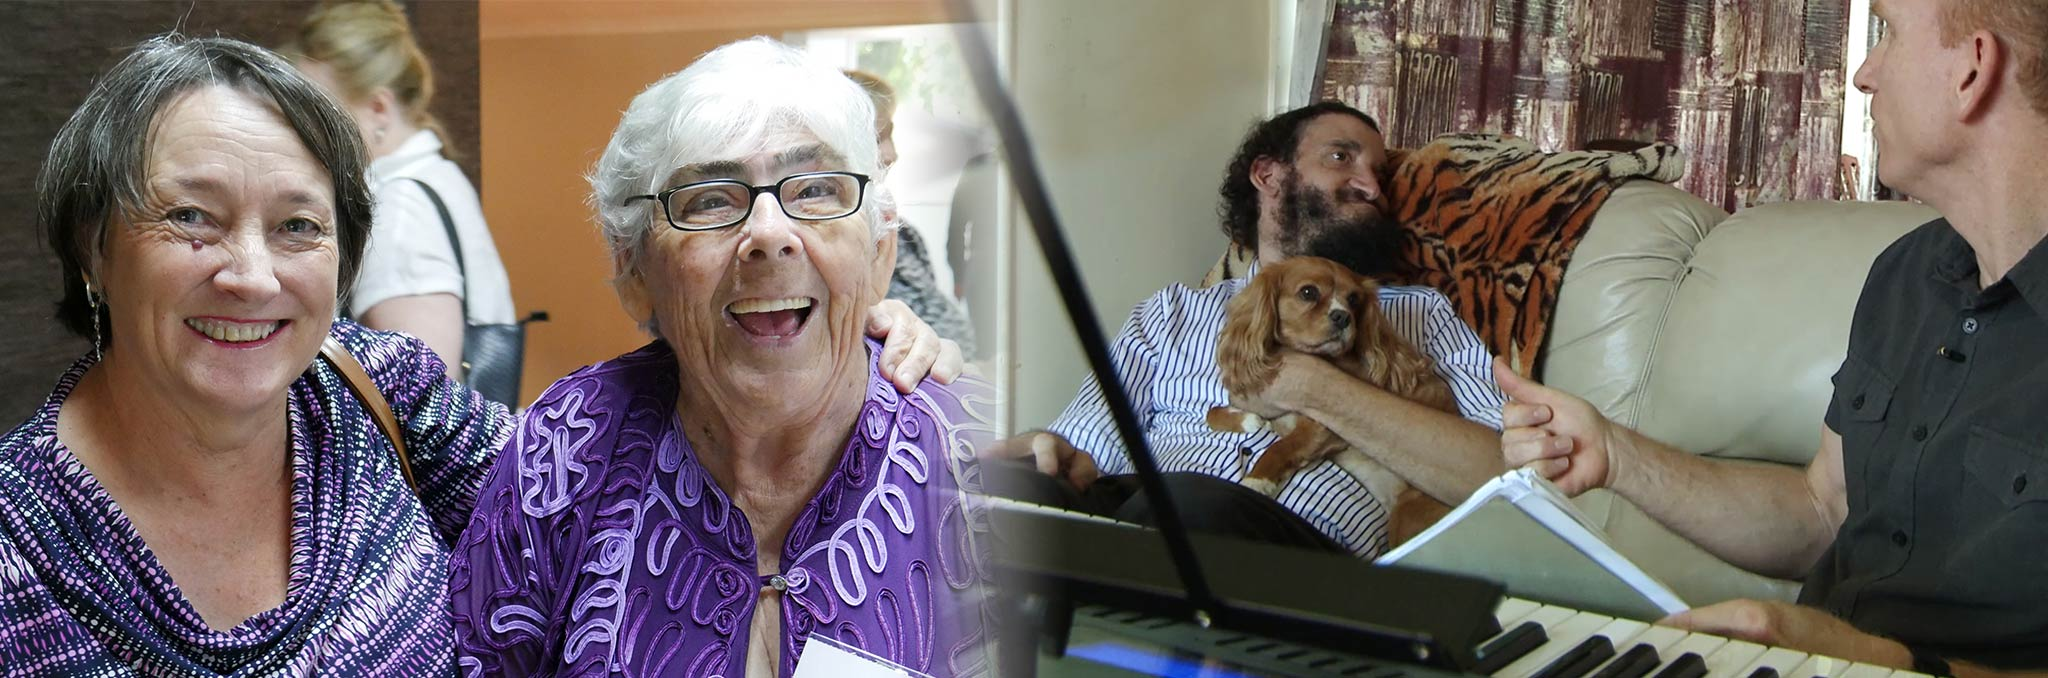 Two images. The first is two older women smiling warmly with their arms around eachother. The second is 2 men sitting at a keyboard.  one of them has a disability